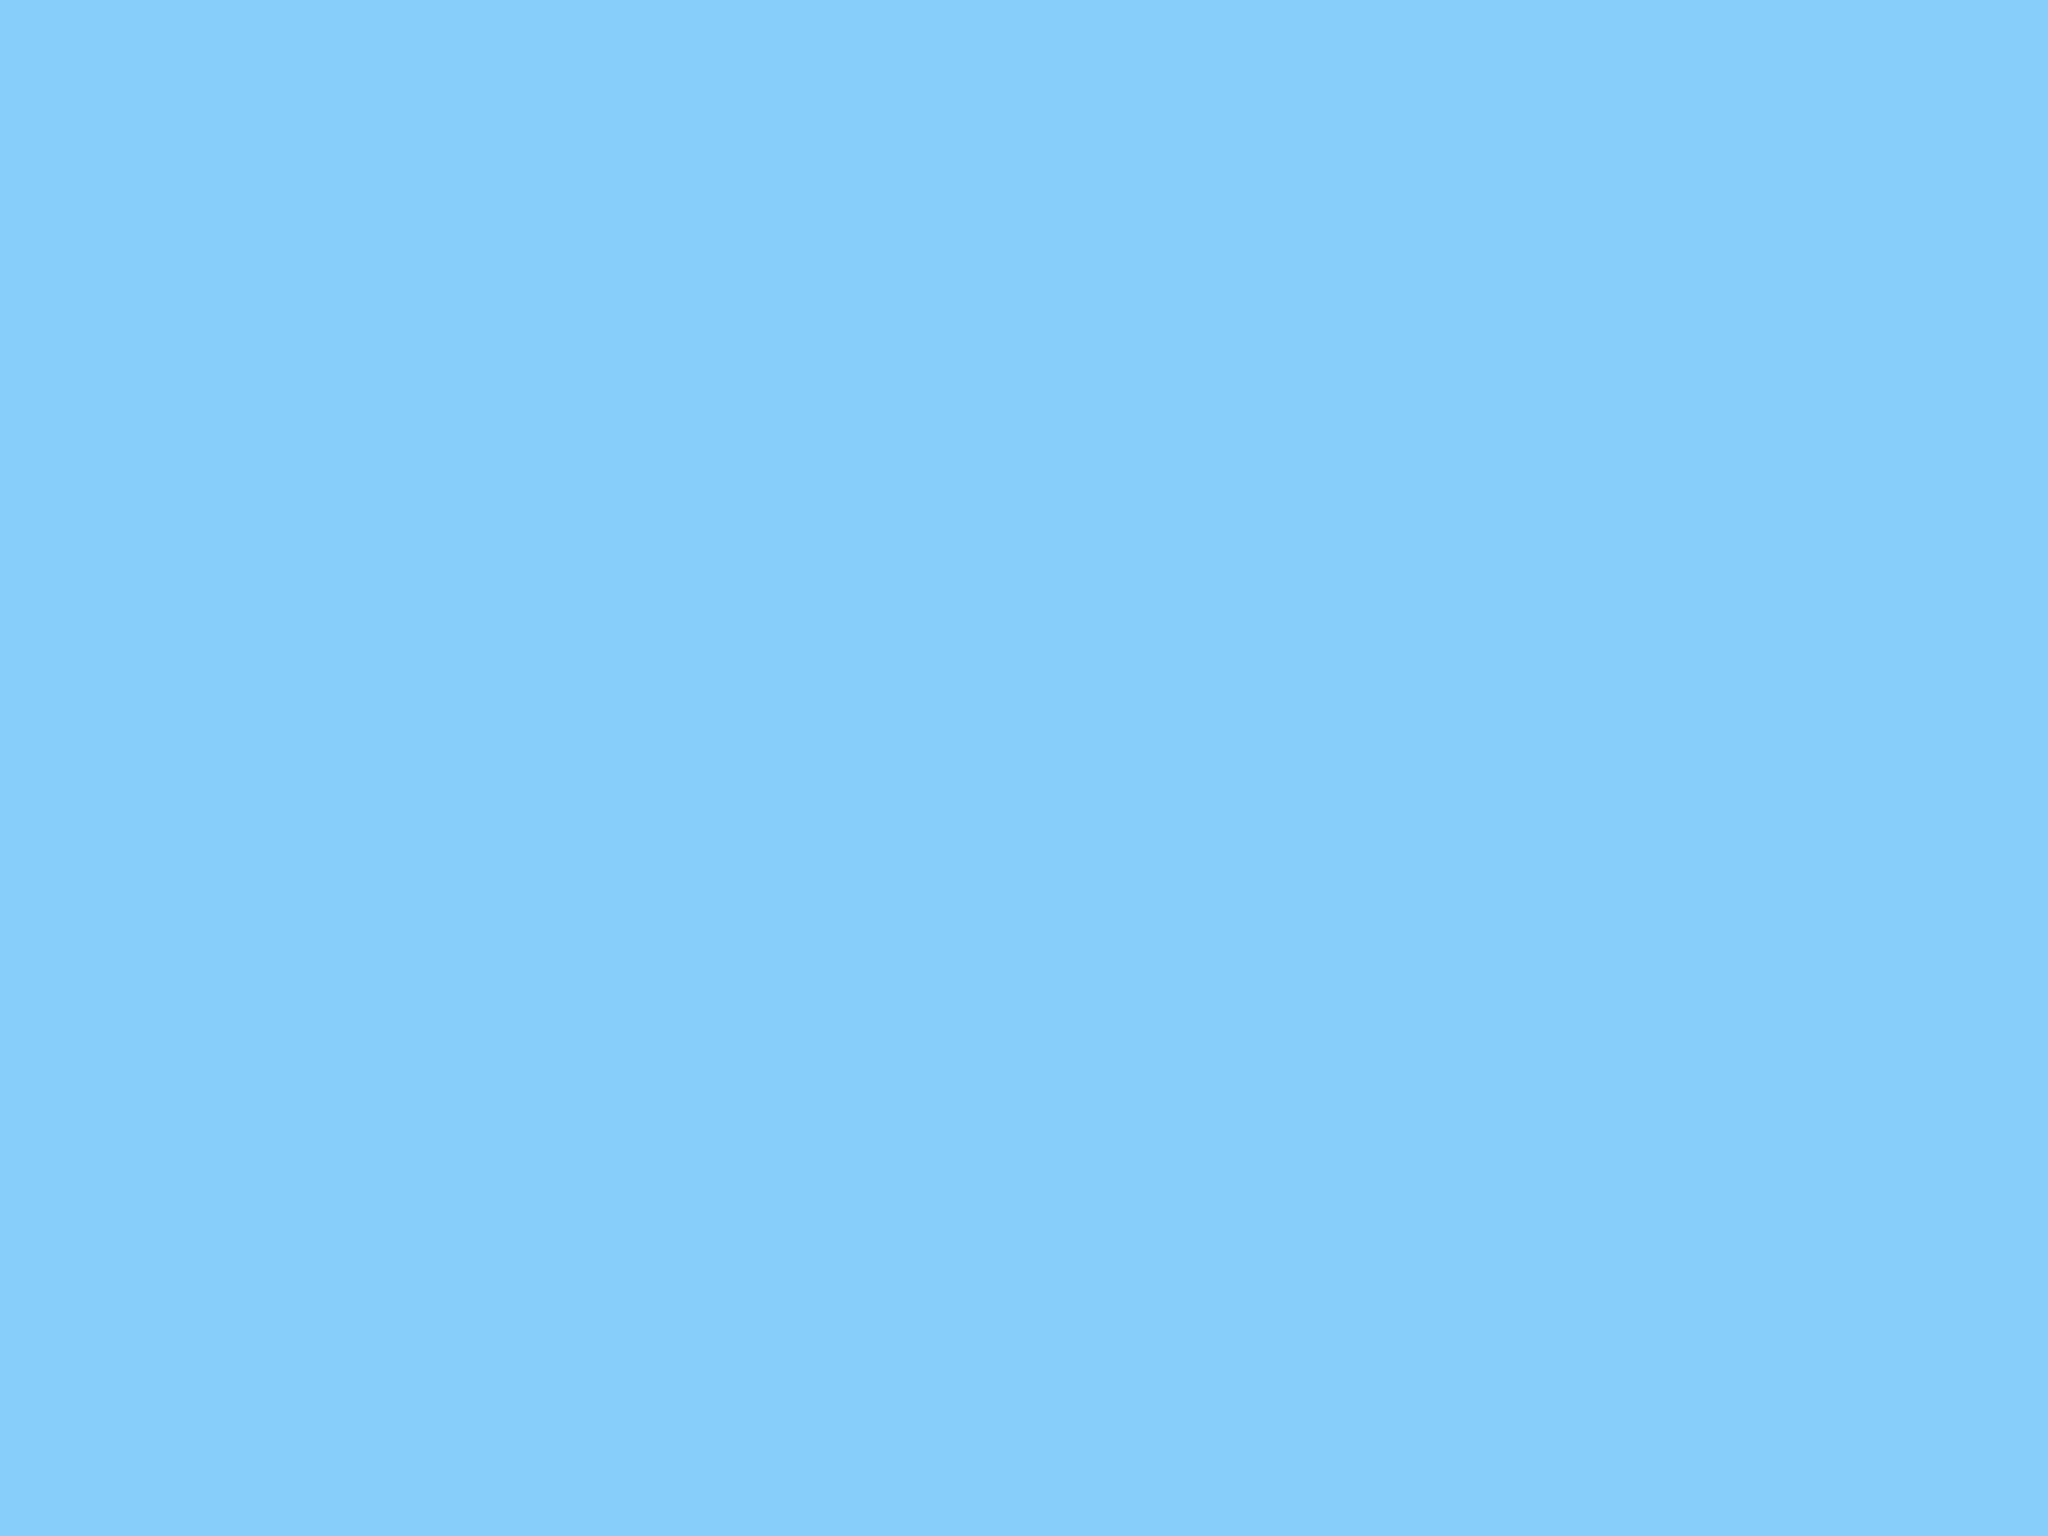 2048x1536 Light Sky Blue Solid Color Background